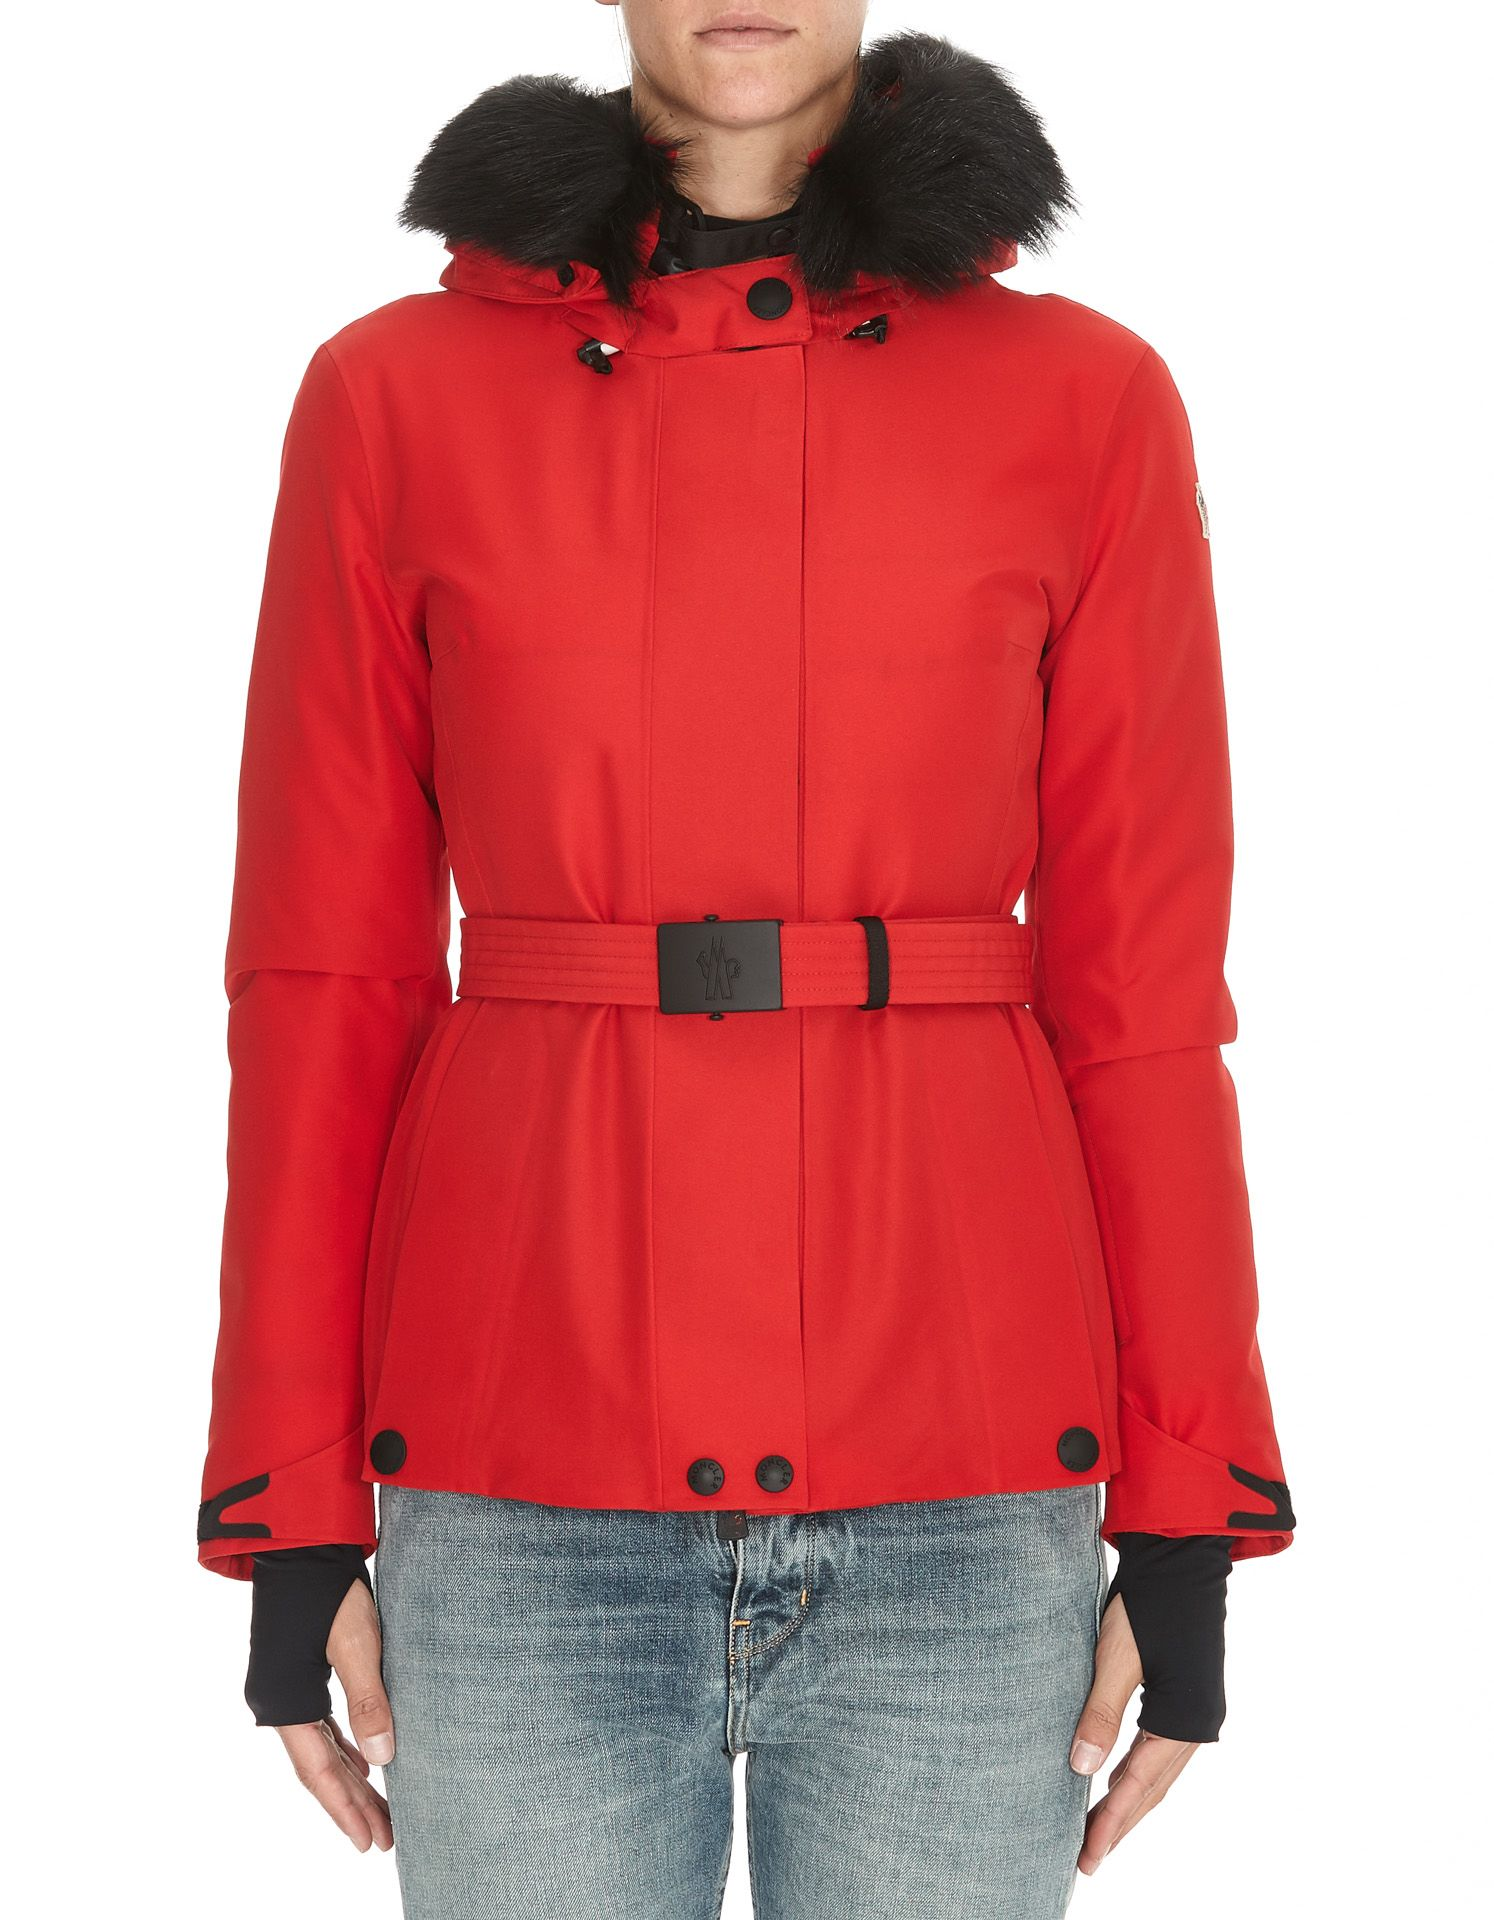 Moncler Grenoble Laplance Down Jacket In Red  2f6ac10ac